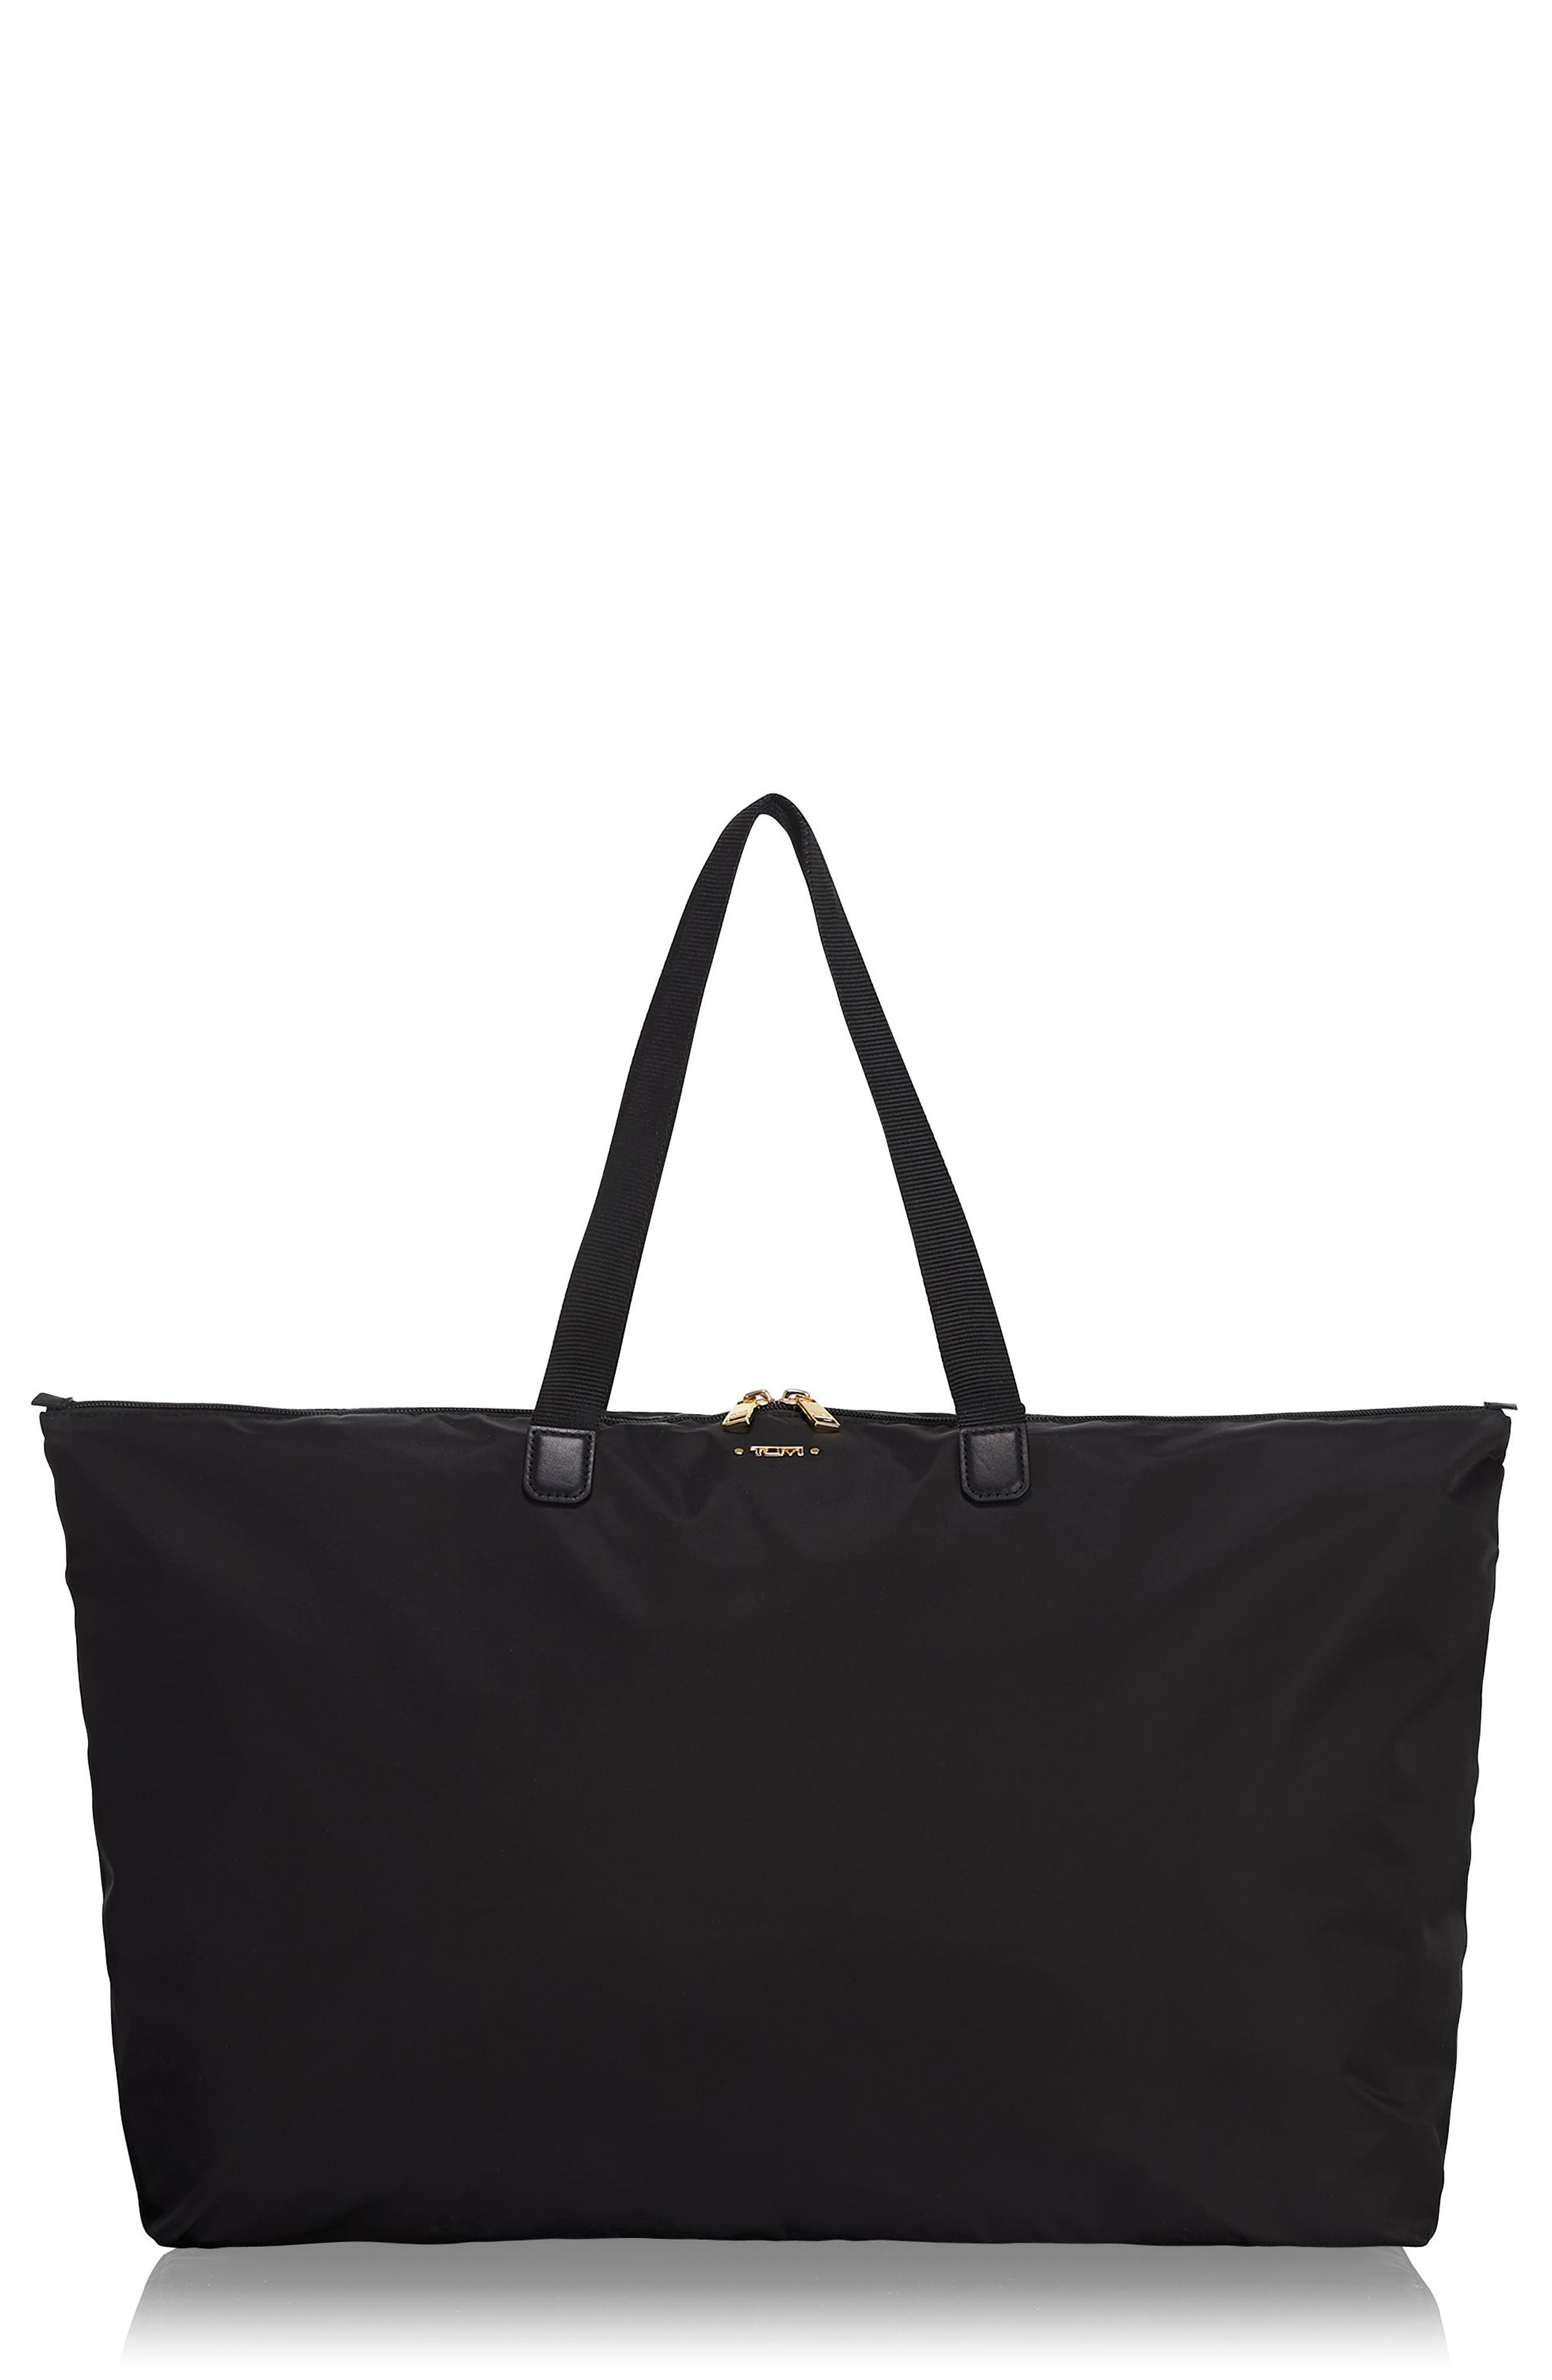 Tumi VOYAGEUR JUST IN CASE PACKABLE NYLON TOTE - BLACK